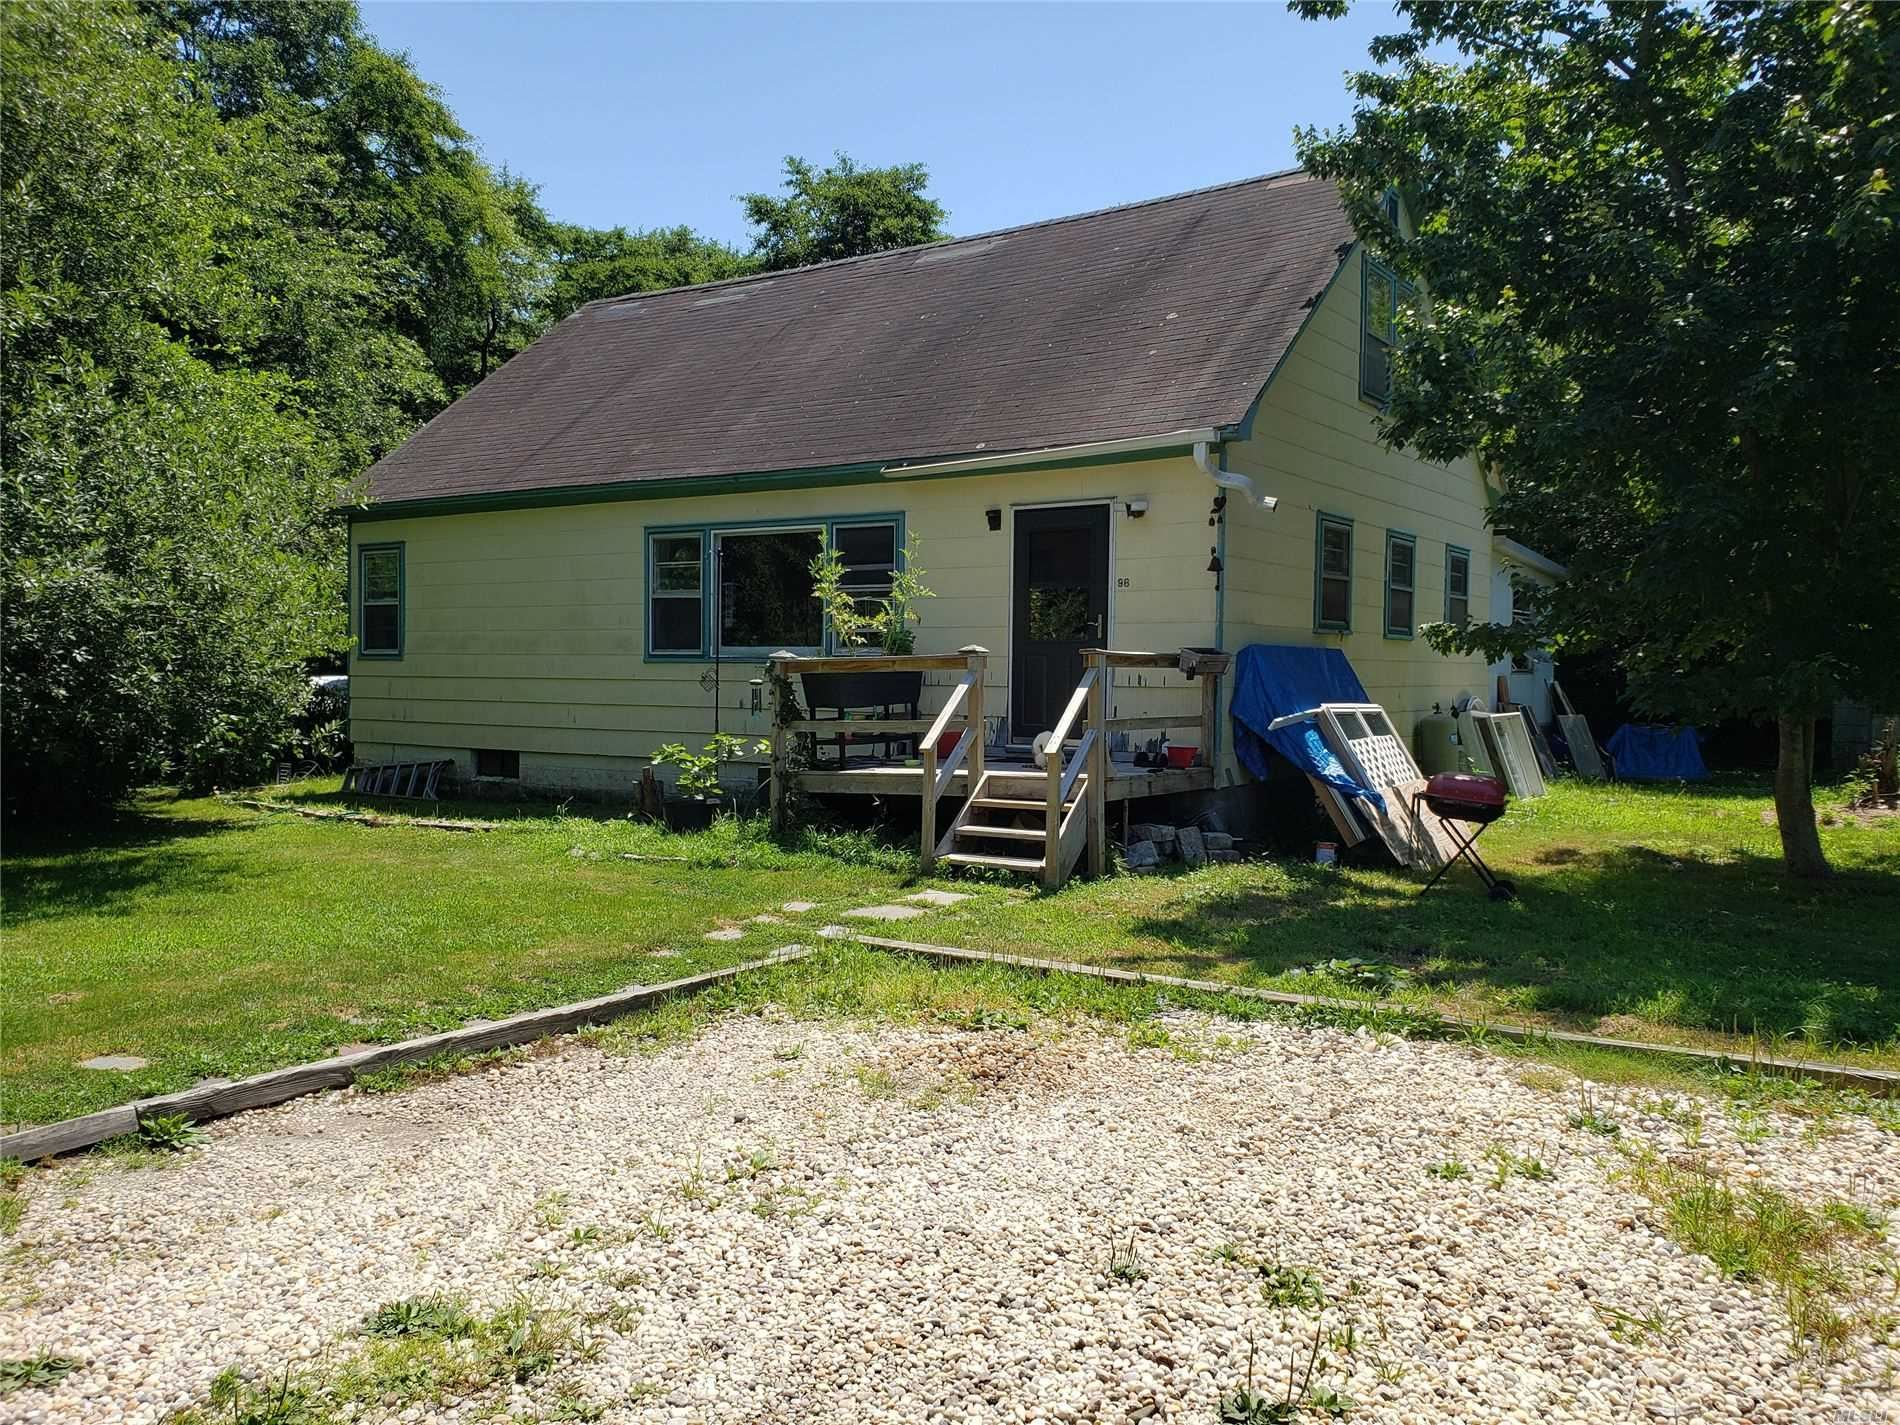 96 Dogwood Road, Mastic Beach, NY 11951 - MLS#: 3235371